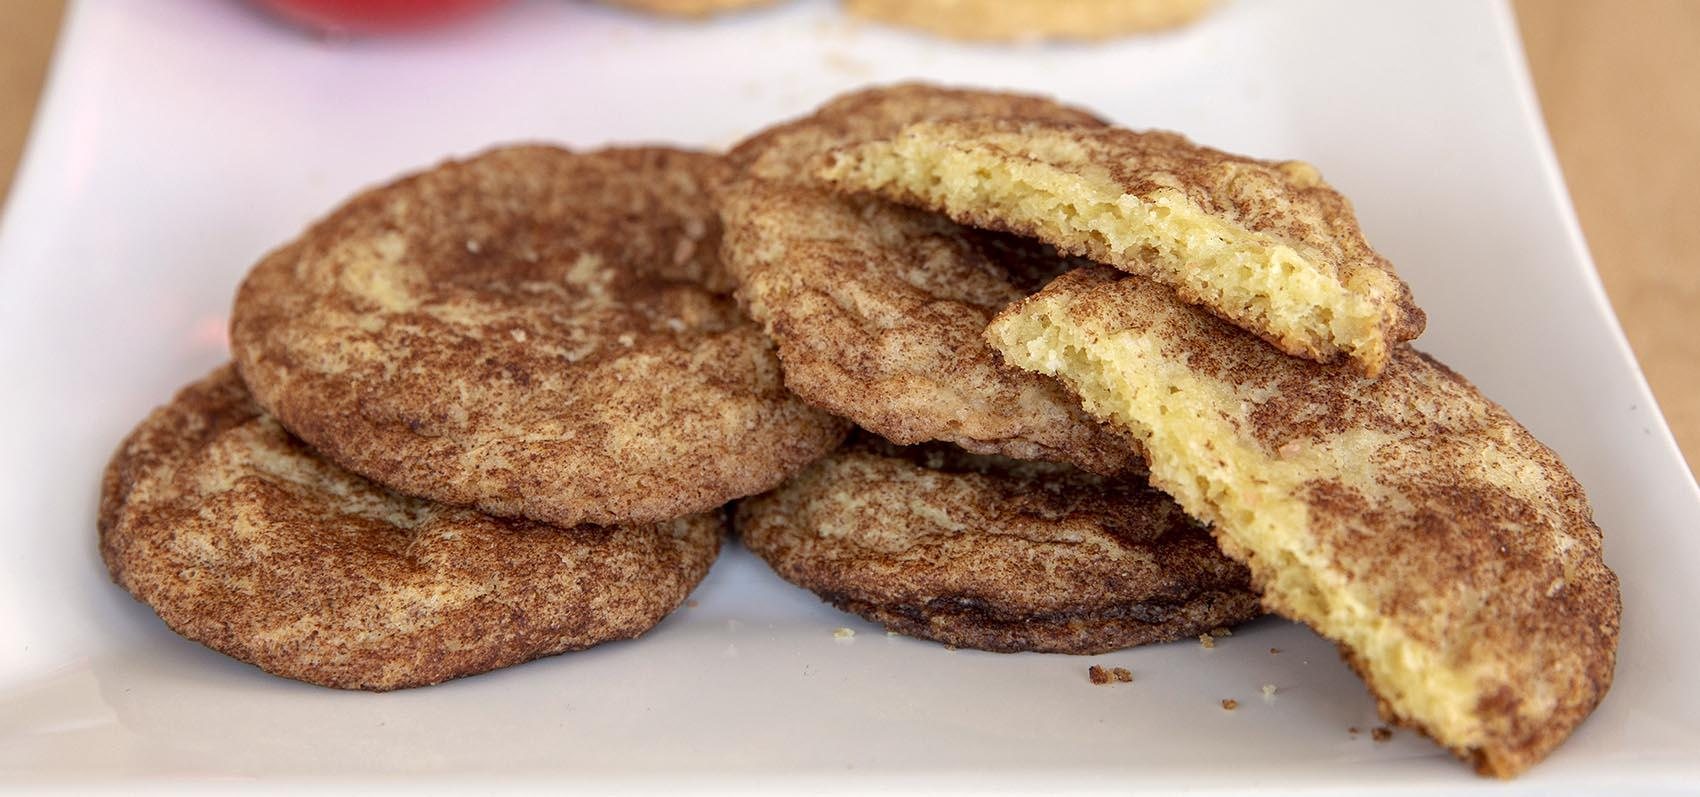 5 Recipes For Your Holiday Cookie Swap Texas Public Radio